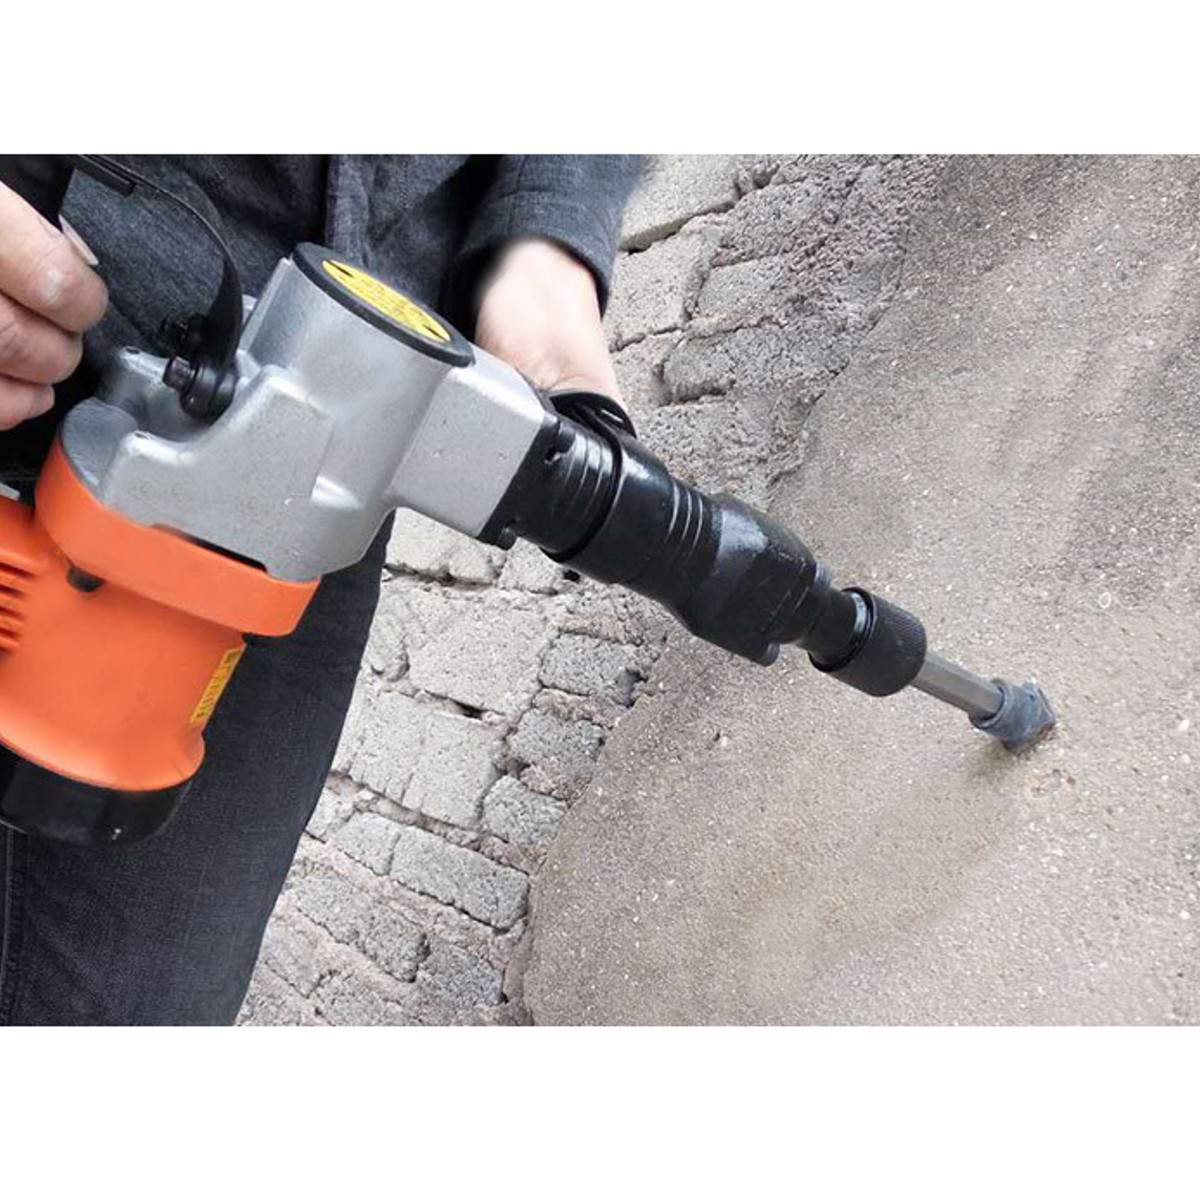 Rotary Hammer Electric Hammer Demolition Hammer Drill Connecting Rod Handle Accessory